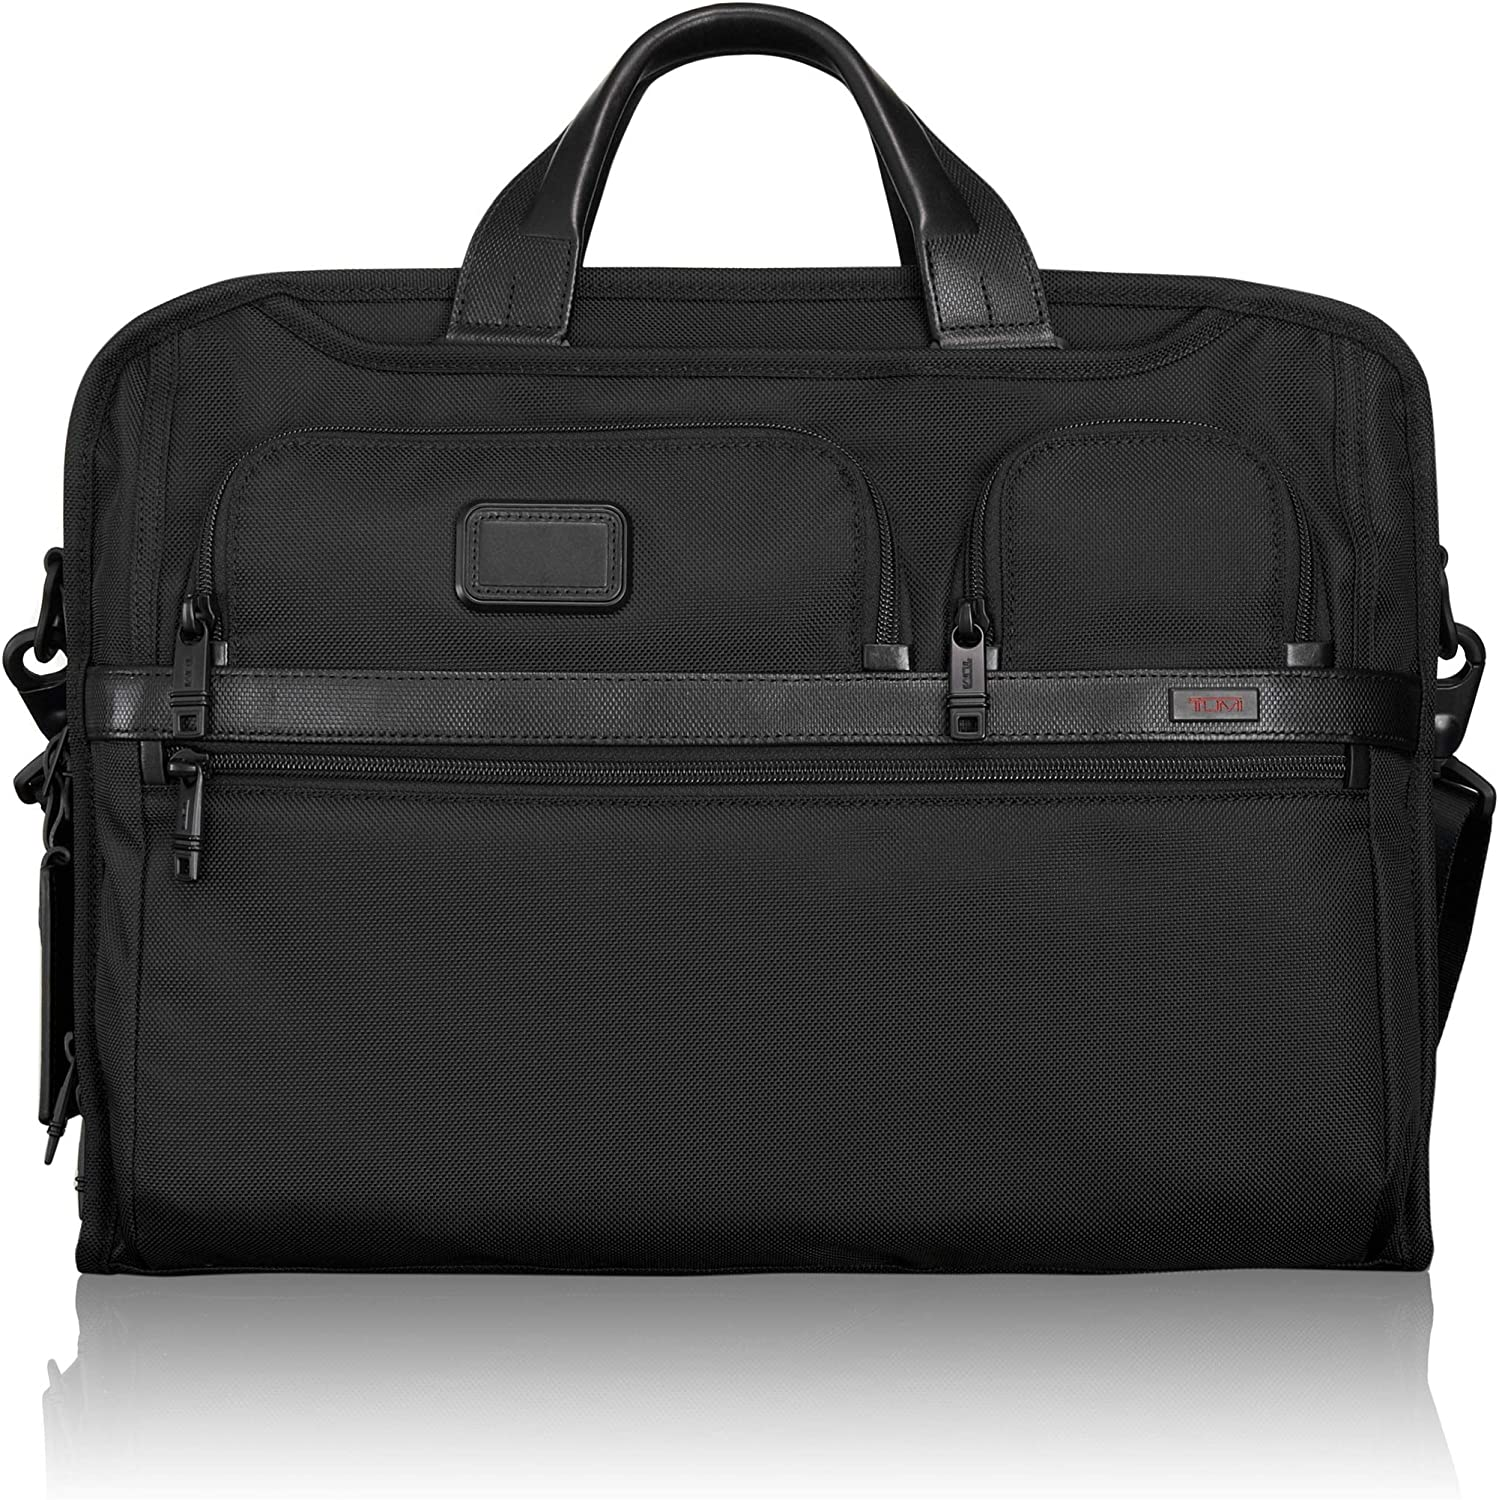 TUMI – Alpha 2 Compact Large Screen Laptop Brief Briefcase – 17 Inch Computer Bag for Men and Women – Black